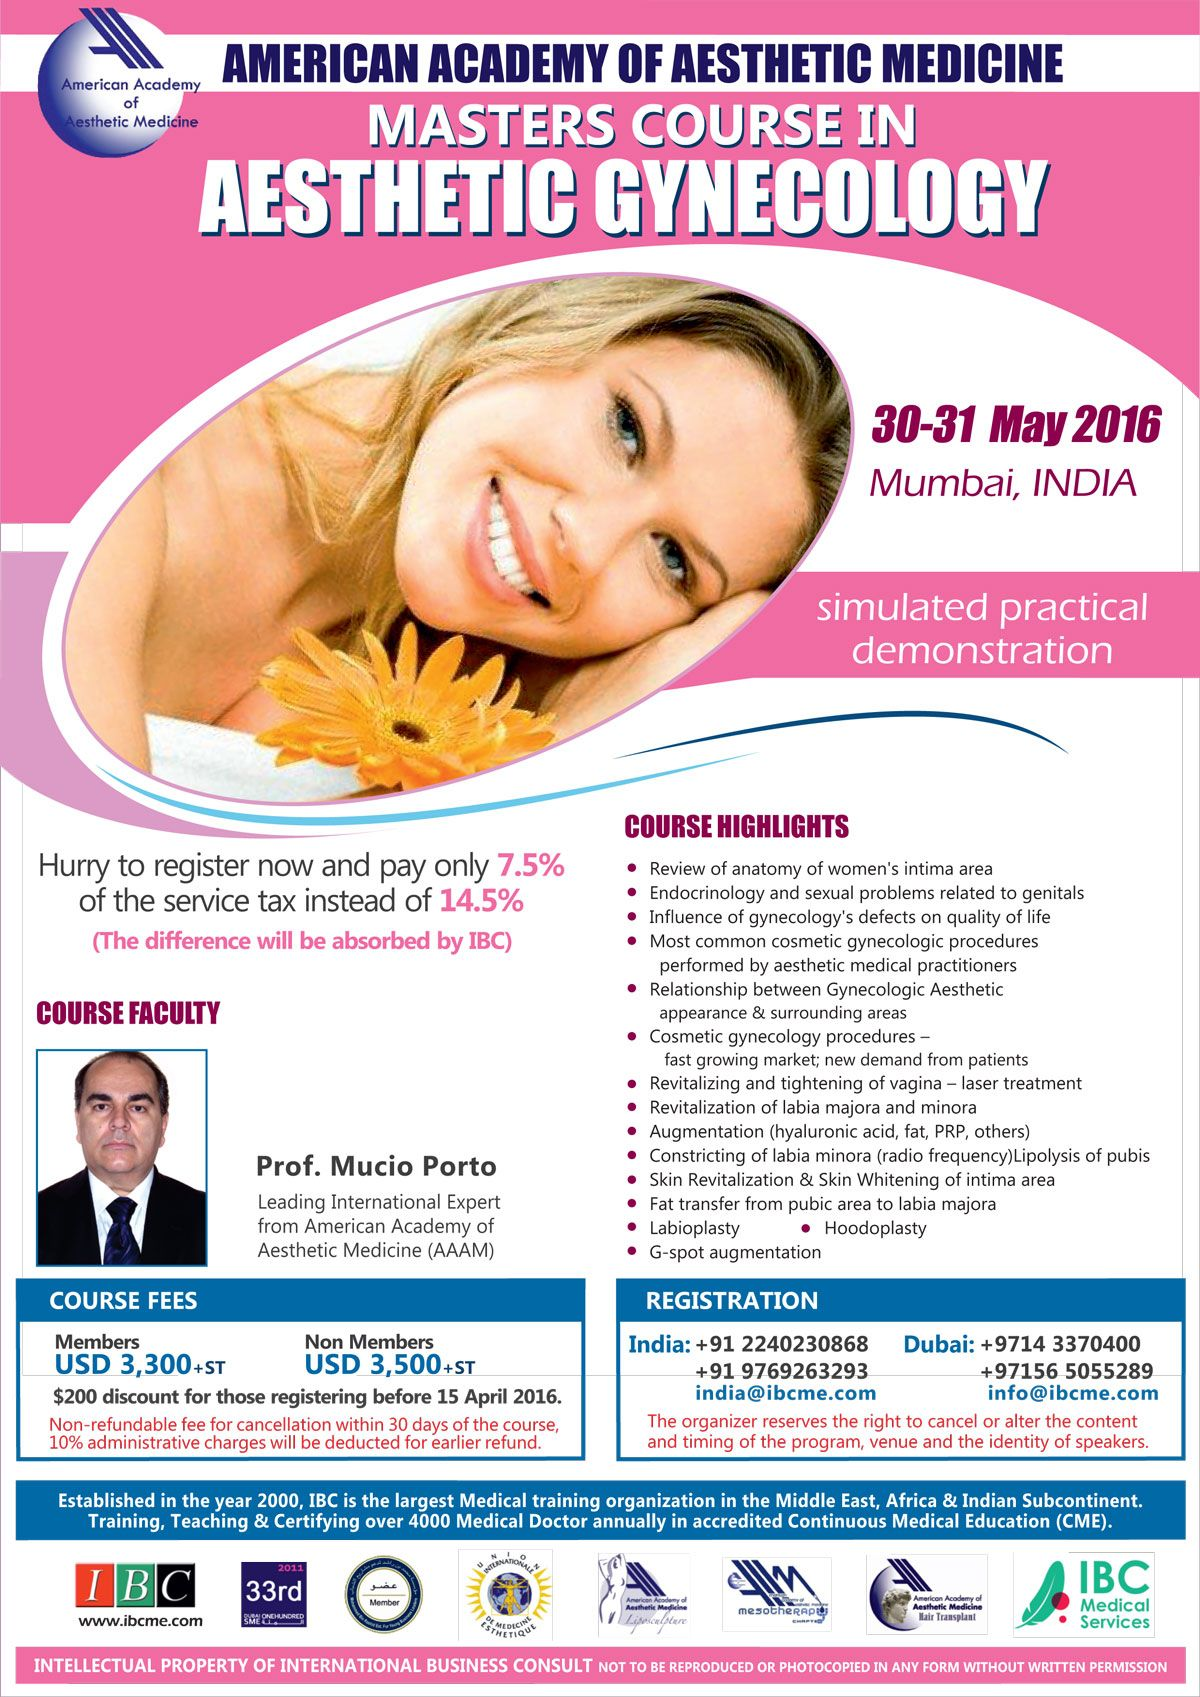 Aesthetic Gynecology Masters Course at Mumbai India by AAAM | ESTEP